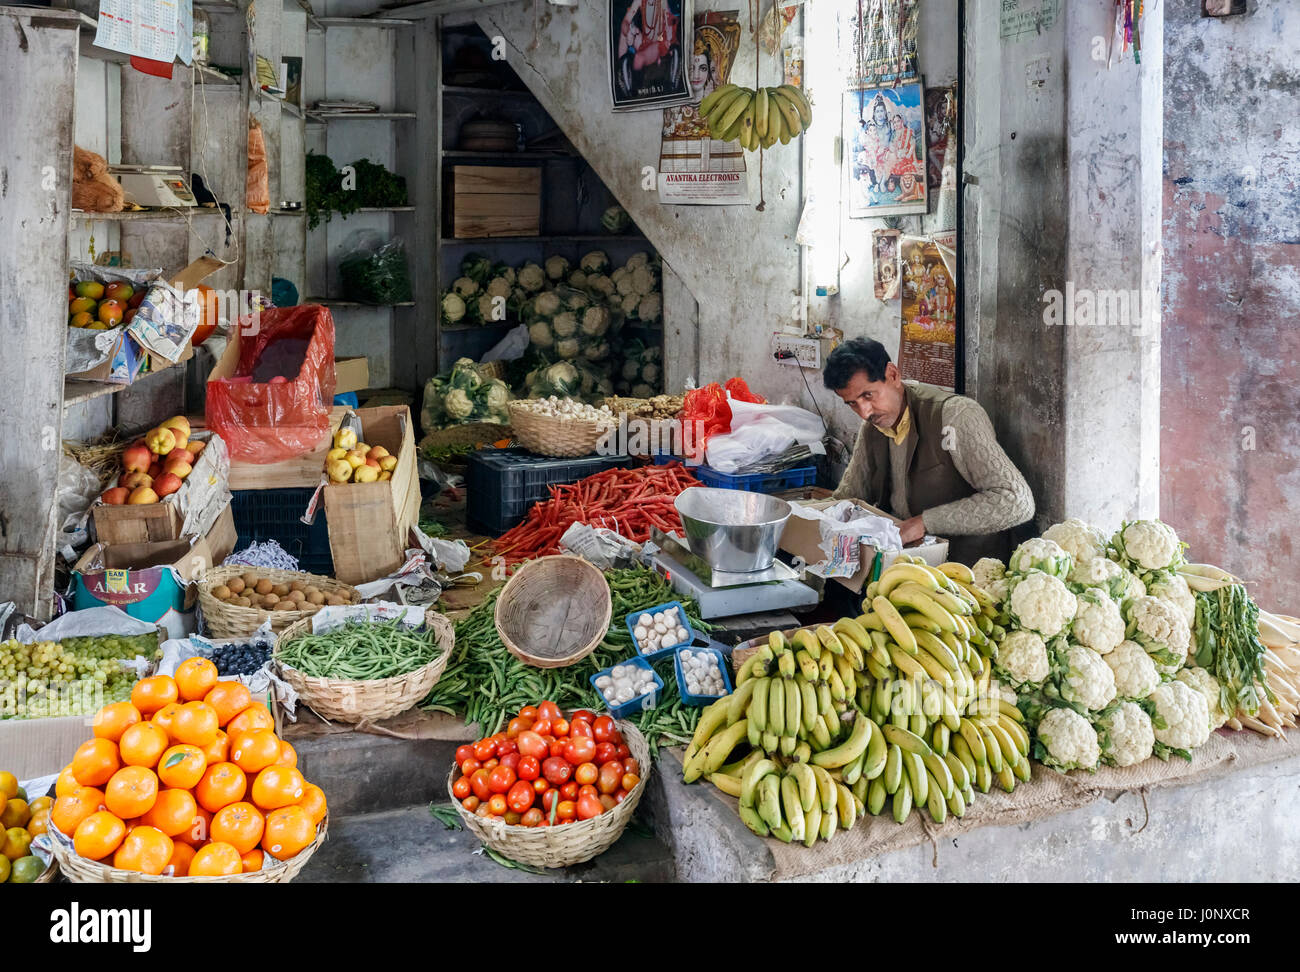 Local shopkeeper in a greengrocery shop in Pragpur heritage village, Kagra district, Himachal Pradesh, India with - Stock Image